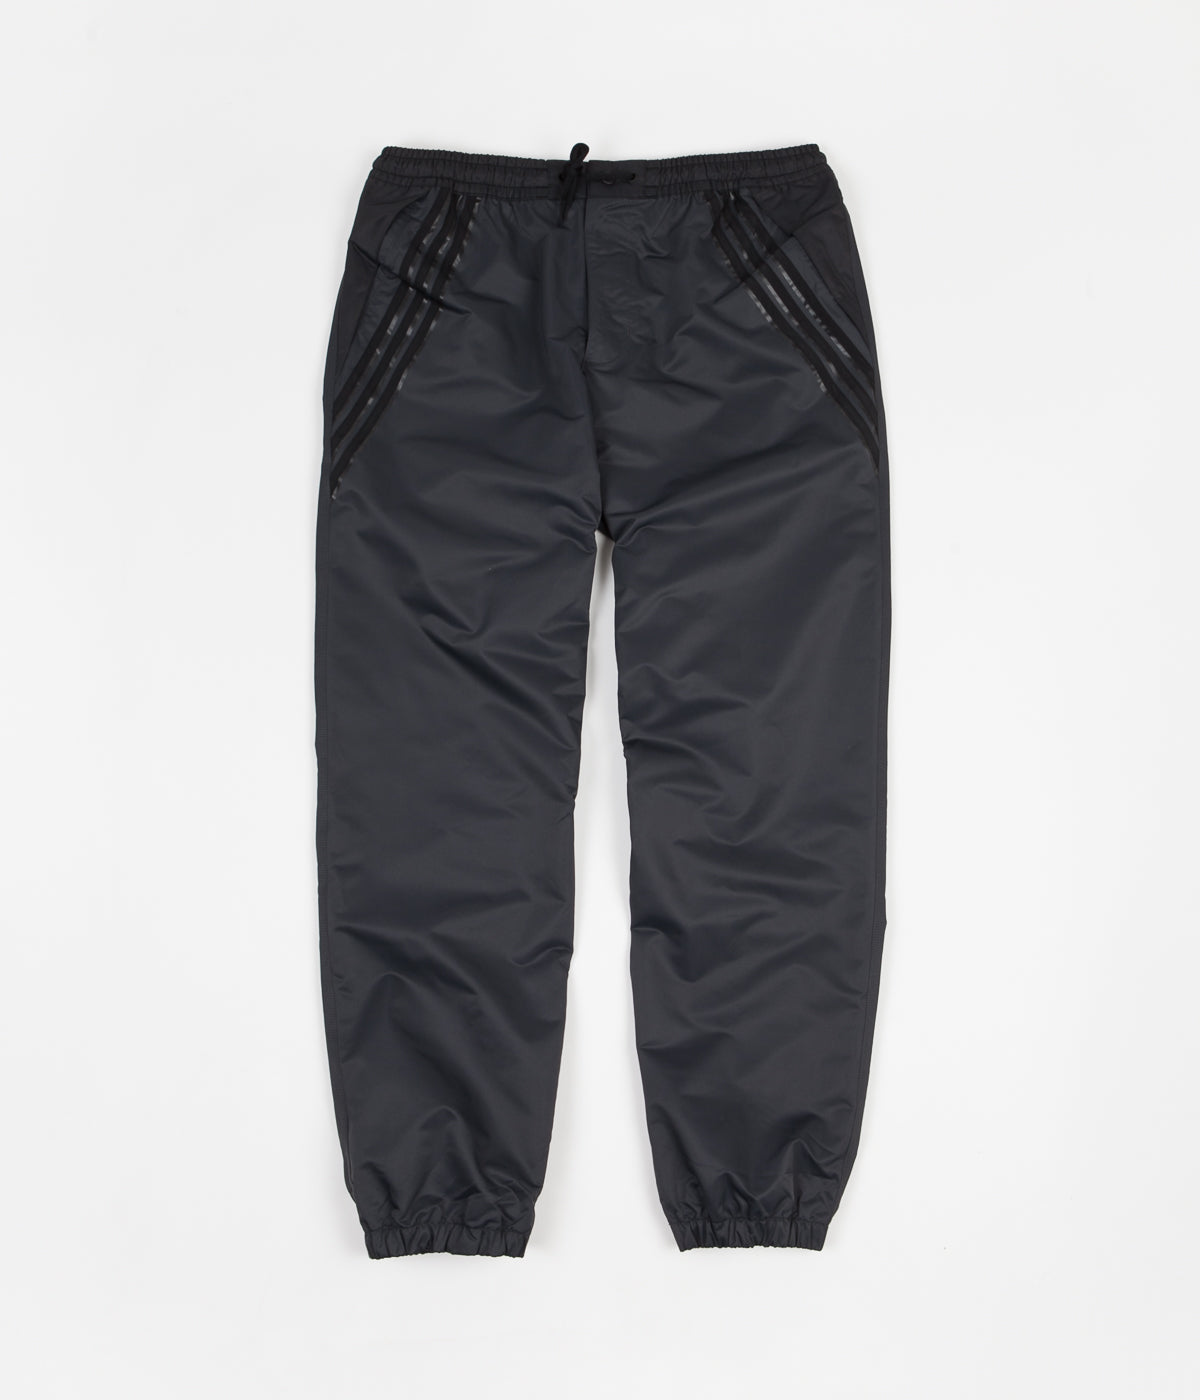 Adidas x Numbers Edition Track Pants - Carbon / Black